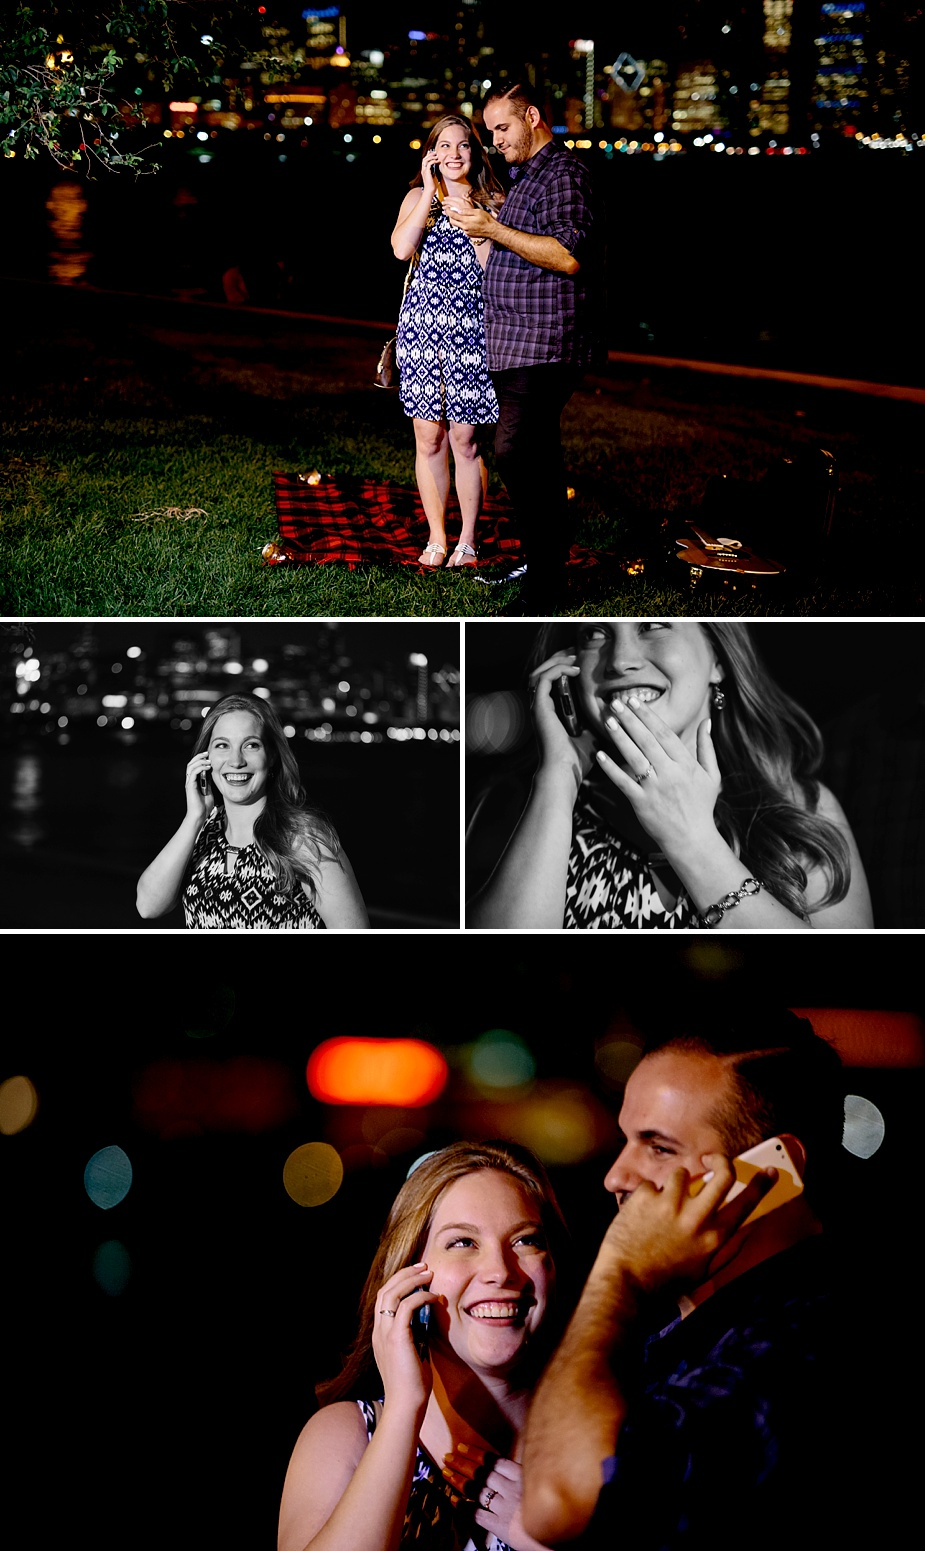 Austin-Katie-Milwaukee-Chicago-Proposal-photographer_0018.jpg